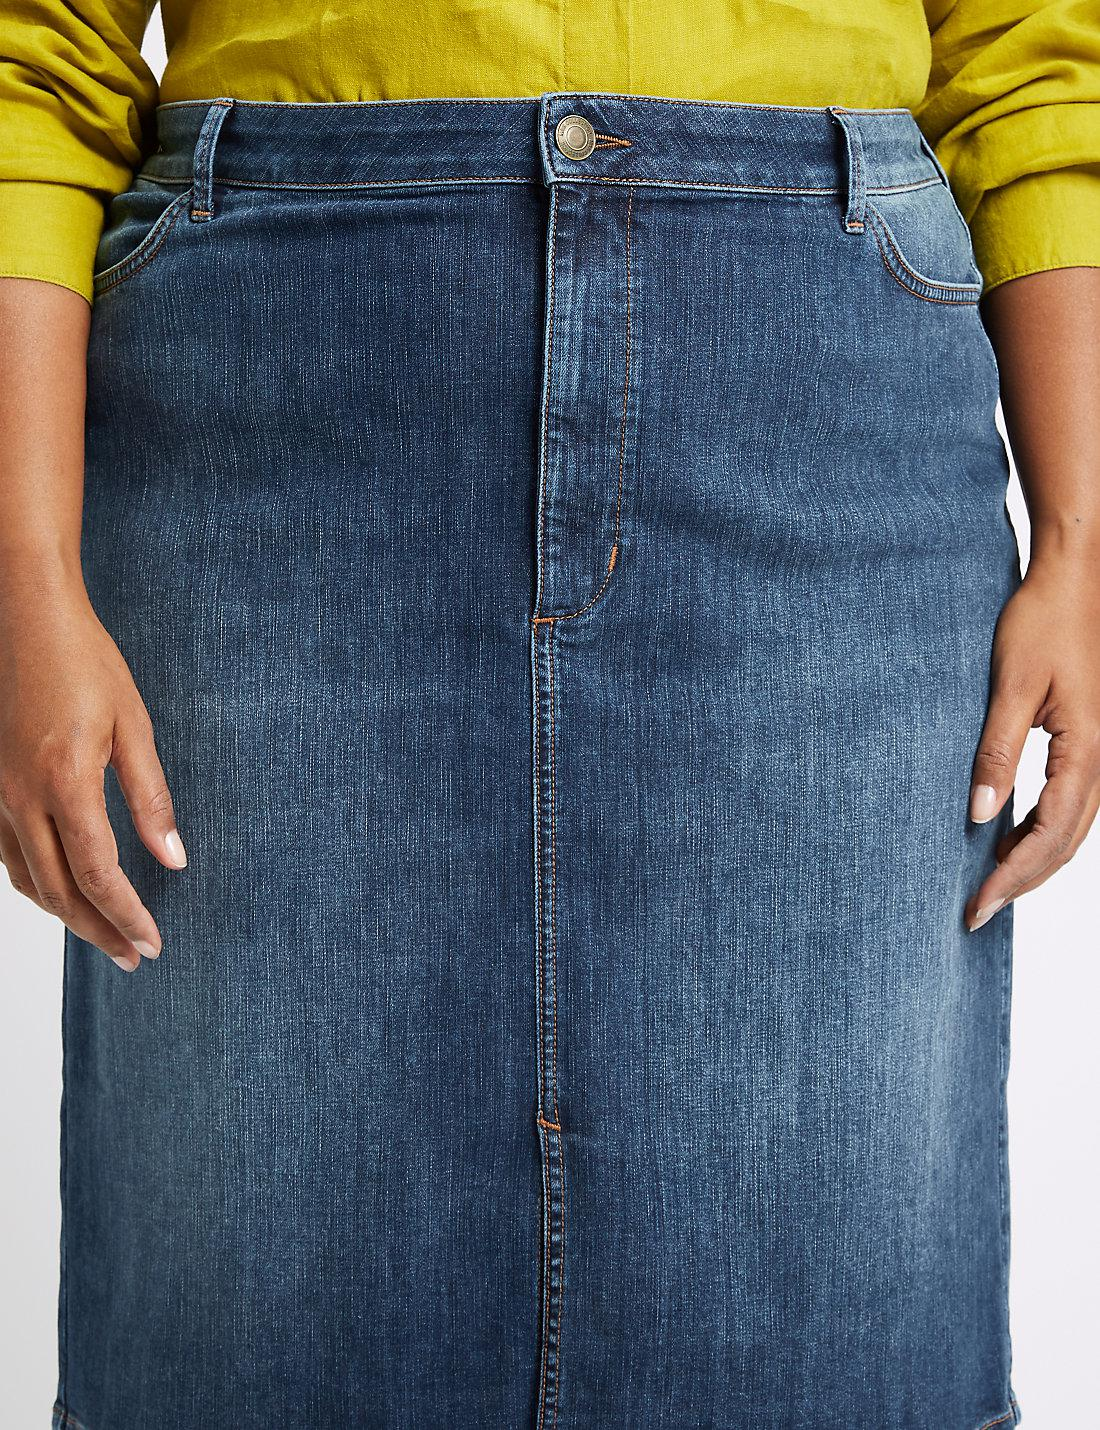 35341750a5 Lyst - Marks & Spencer Curve Cotton Rich Stretch Denim Skirt in Blue